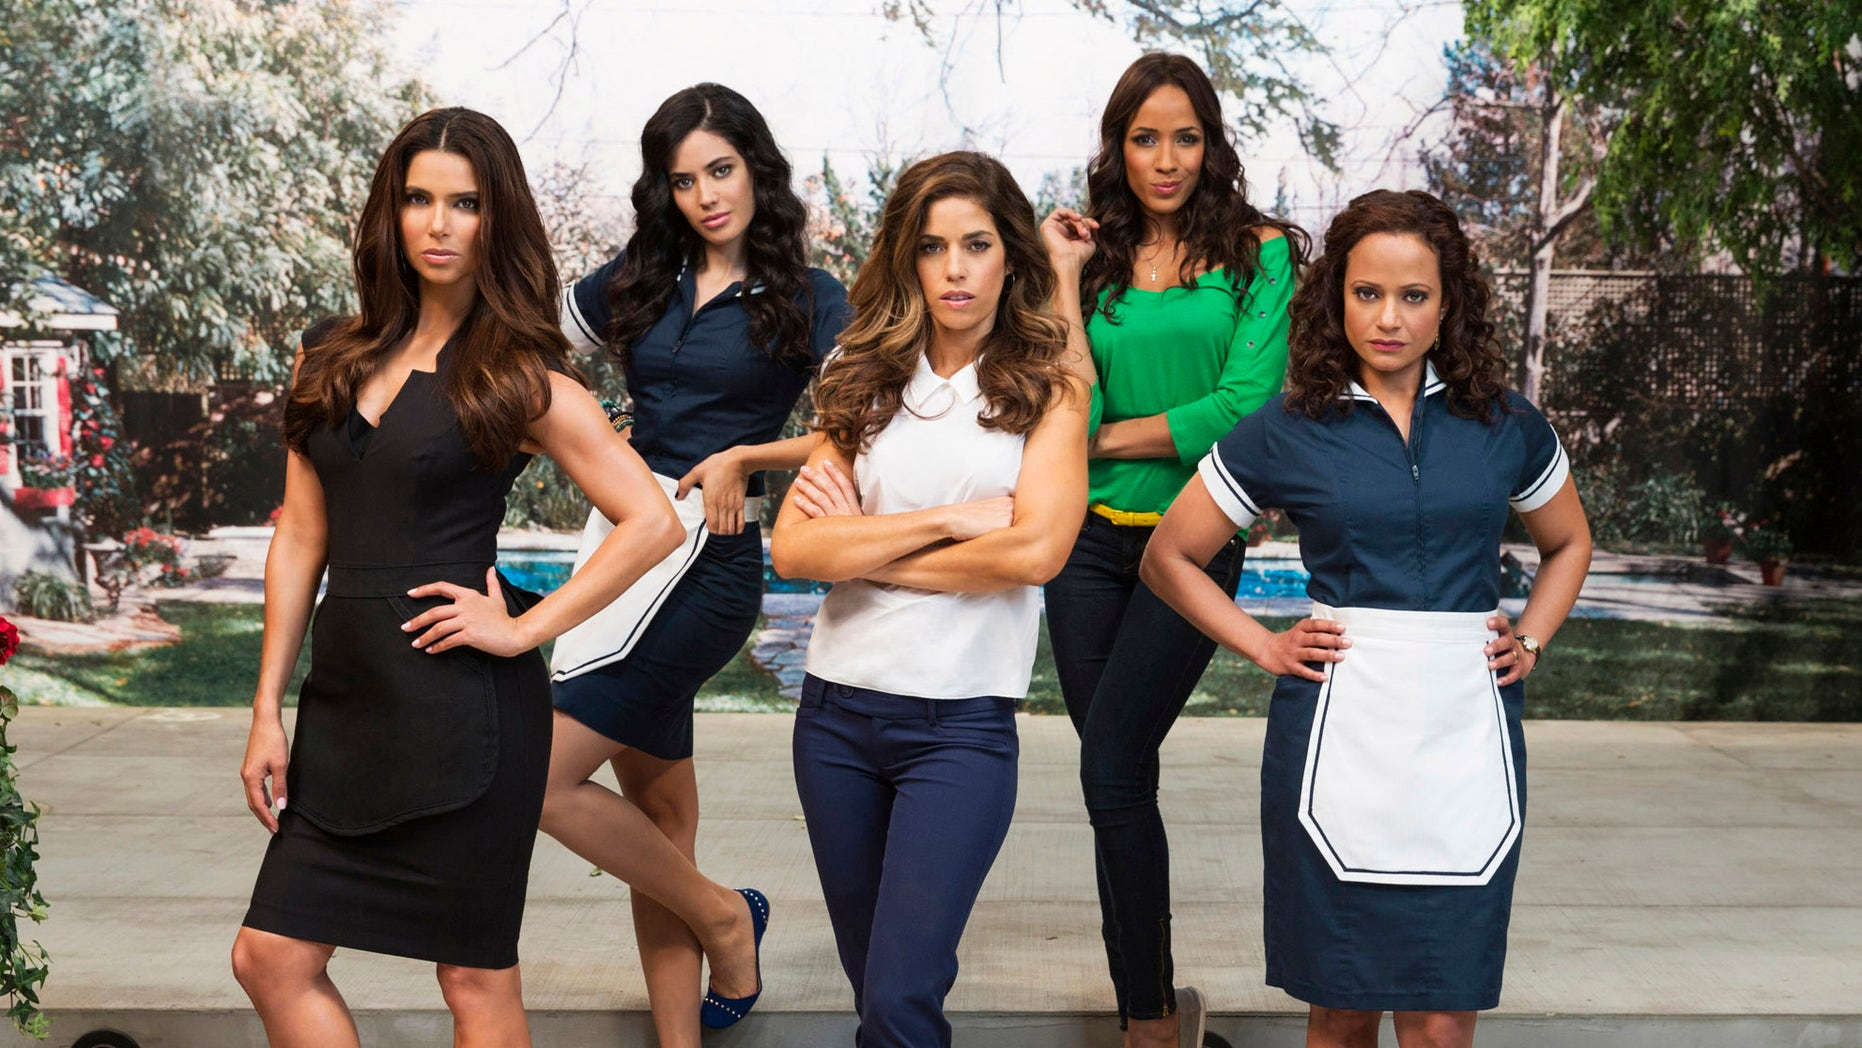 """FILE - This undated file photo released by Lifetime Television shows, from left, Roselyn Sanchez, Edy Ganem, Ana Ortiz, Dania Ramirez and Judy Reyes who star in the new Lifetime series """"Devious Maids."""" The series, about the lives of domestic workers and their wealthy bosses, was created by Marc Cherry, who also created the popular series, """"Desperate Housewives."""" (AP Photo/Lifetime Television, Jim Fiscus, File)"""